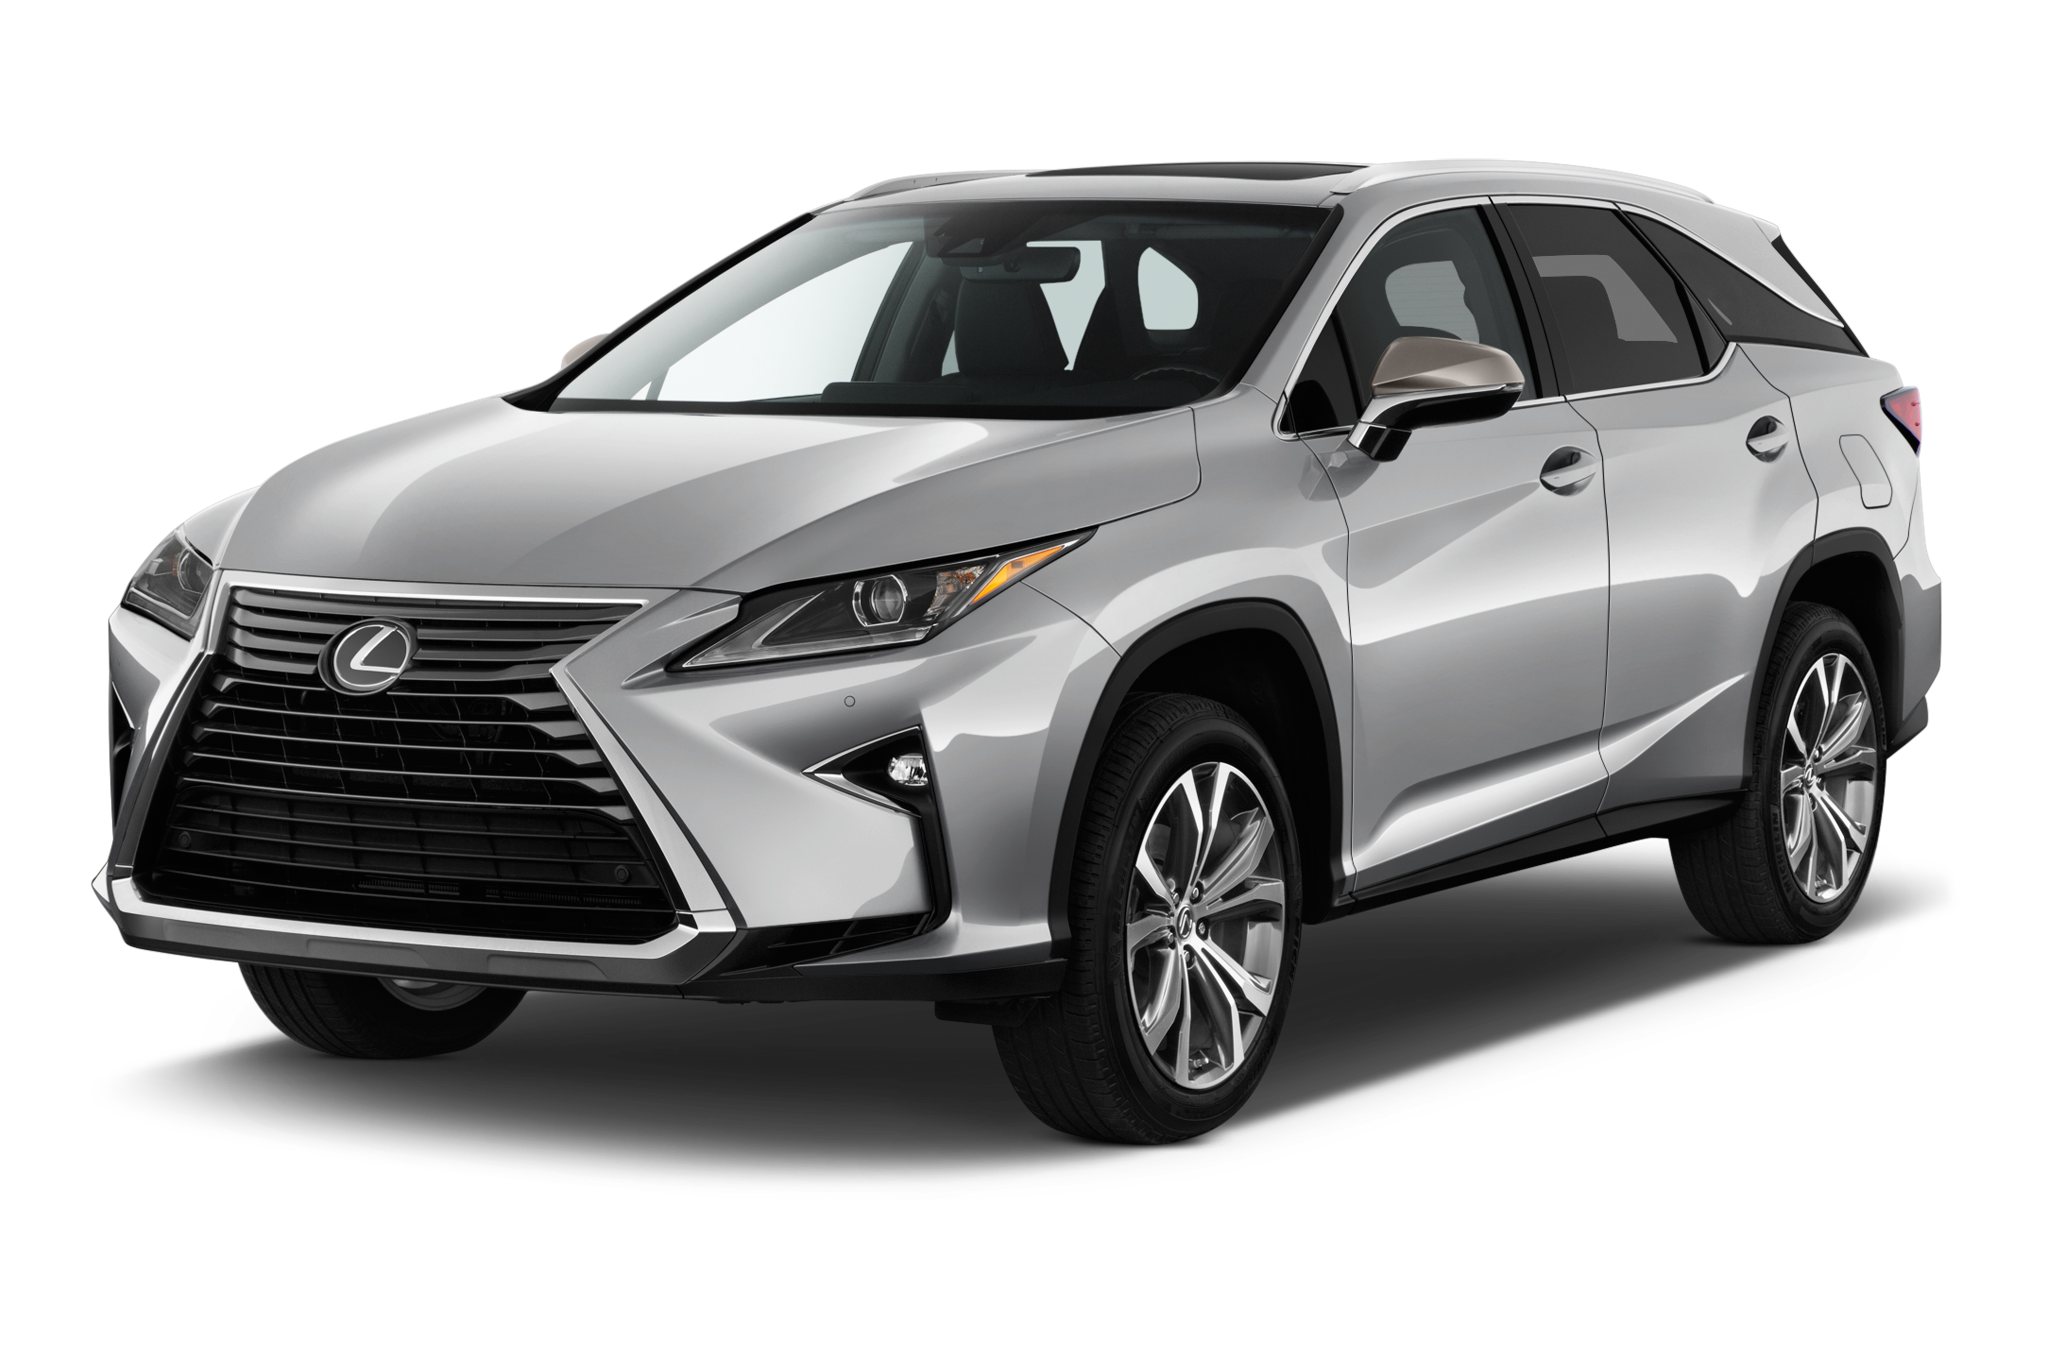 2018 lexus rx 350l luxury awd specs and features msn autos. Black Bedroom Furniture Sets. Home Design Ideas